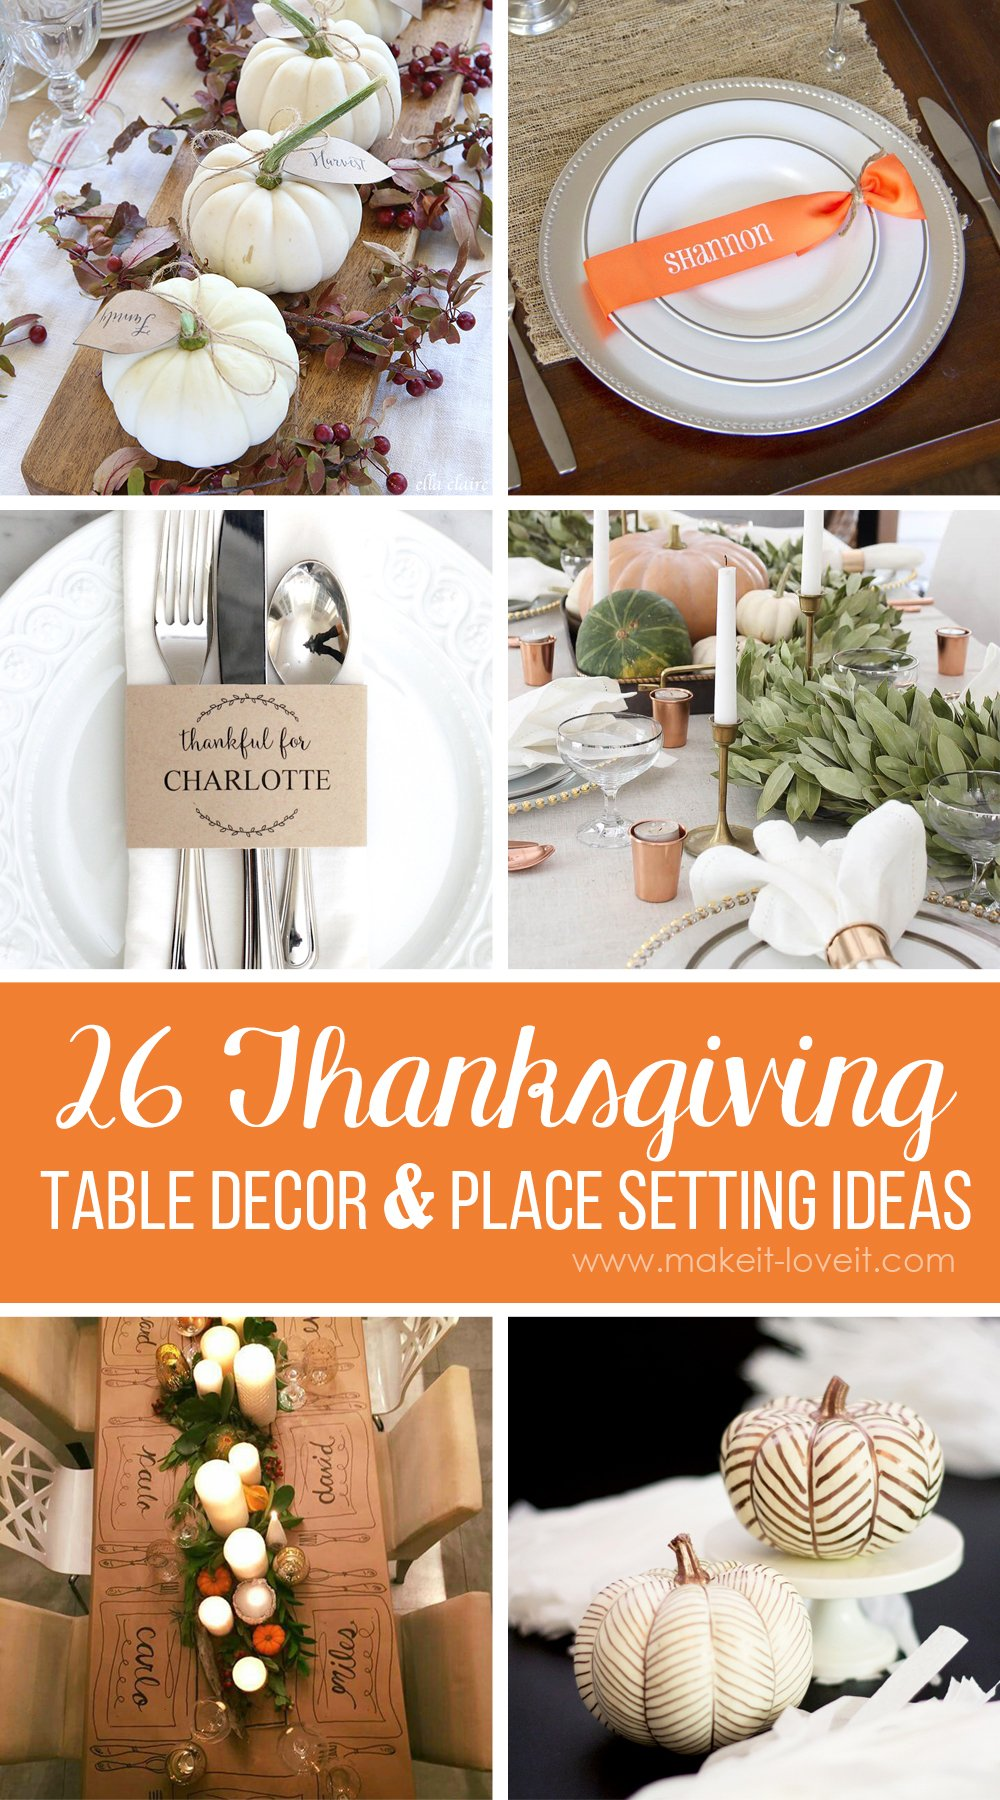 26 Lovely Thanksgiving Table Decor and Place Setting Ideas | via .makeit-loveit & 26 Lovely Thanksgiving Table Decor and Place Setting Ideas | Make It ...